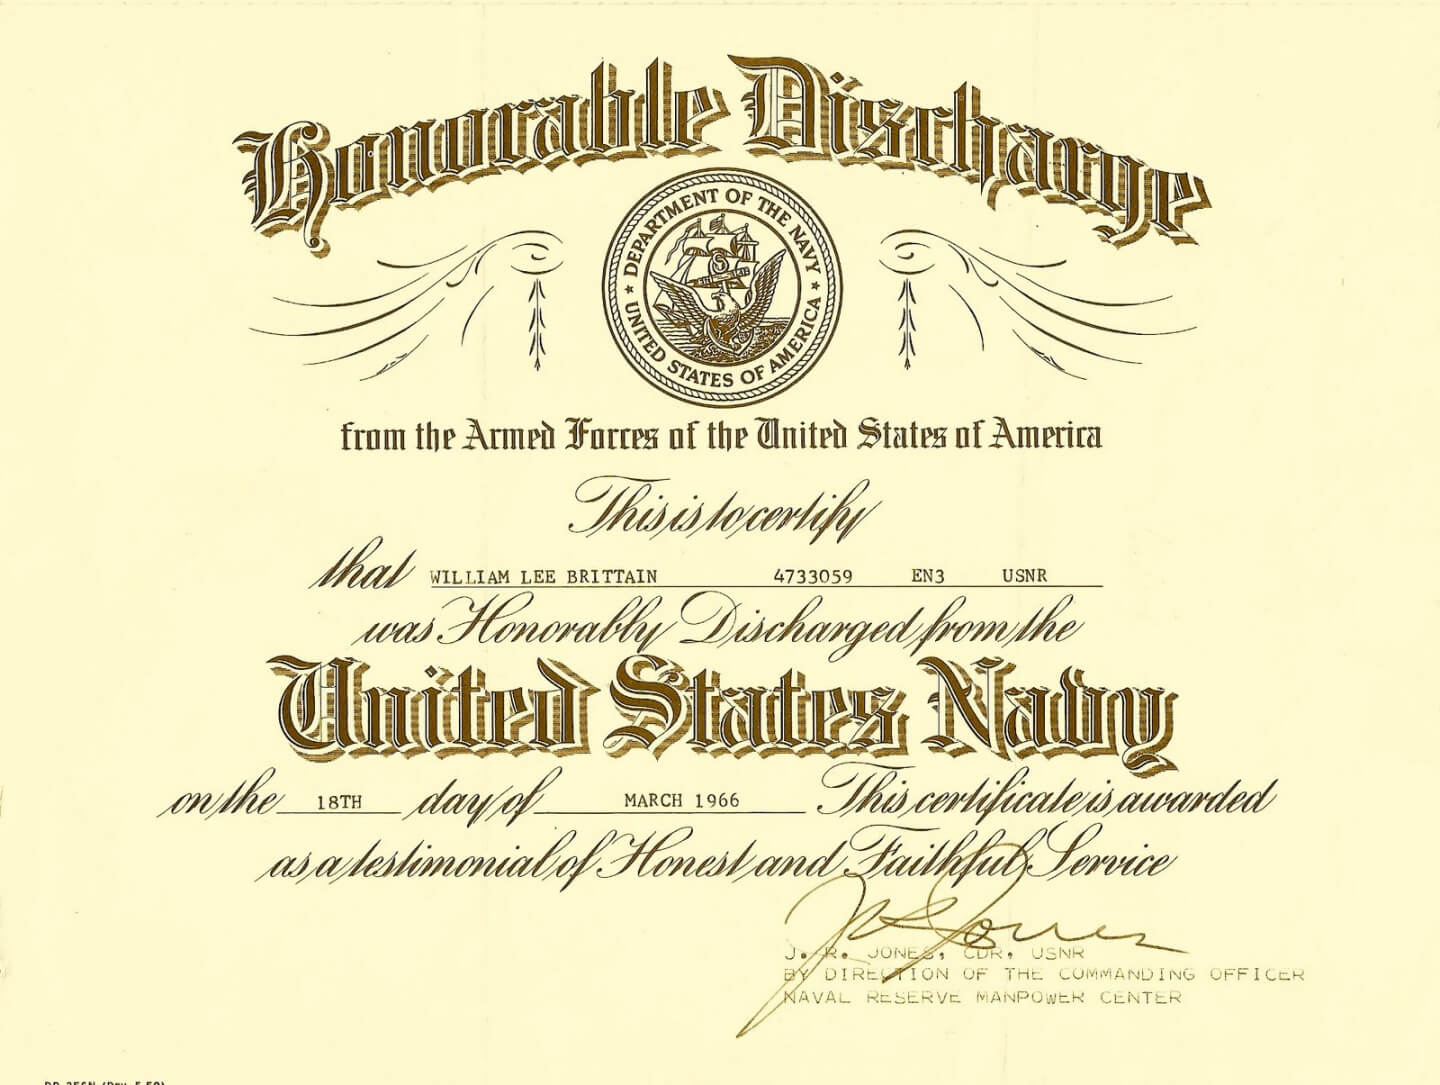 Officer Promotion Certificate Template - Atlantaauctionco Pertaining To Officer Promotion Certificate Template